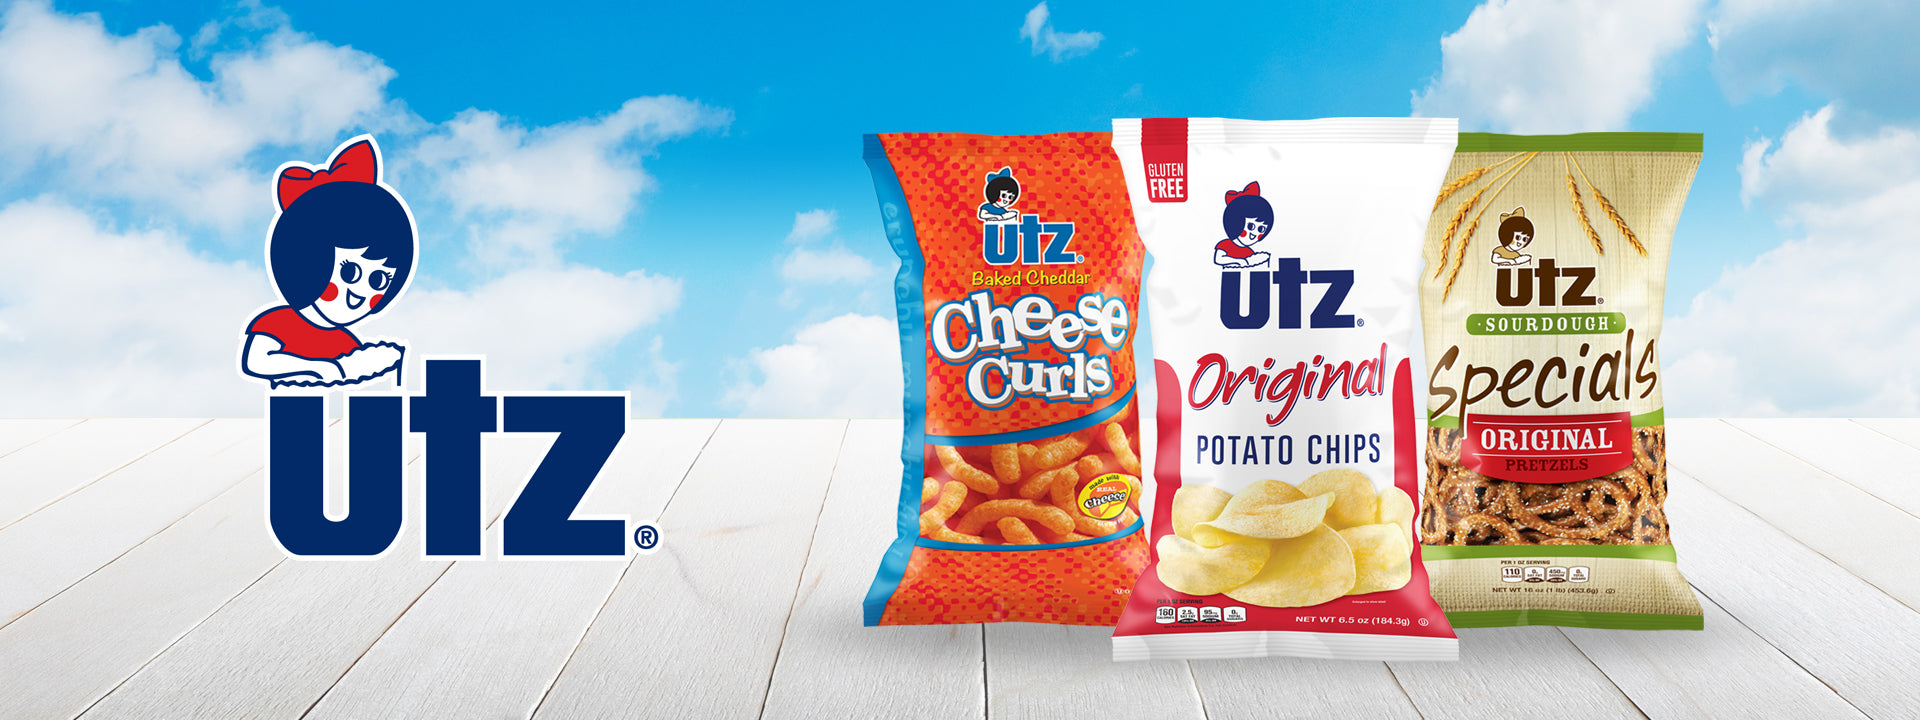 About Utz Snacks | Utz Quality Foods - Our Snack Brands